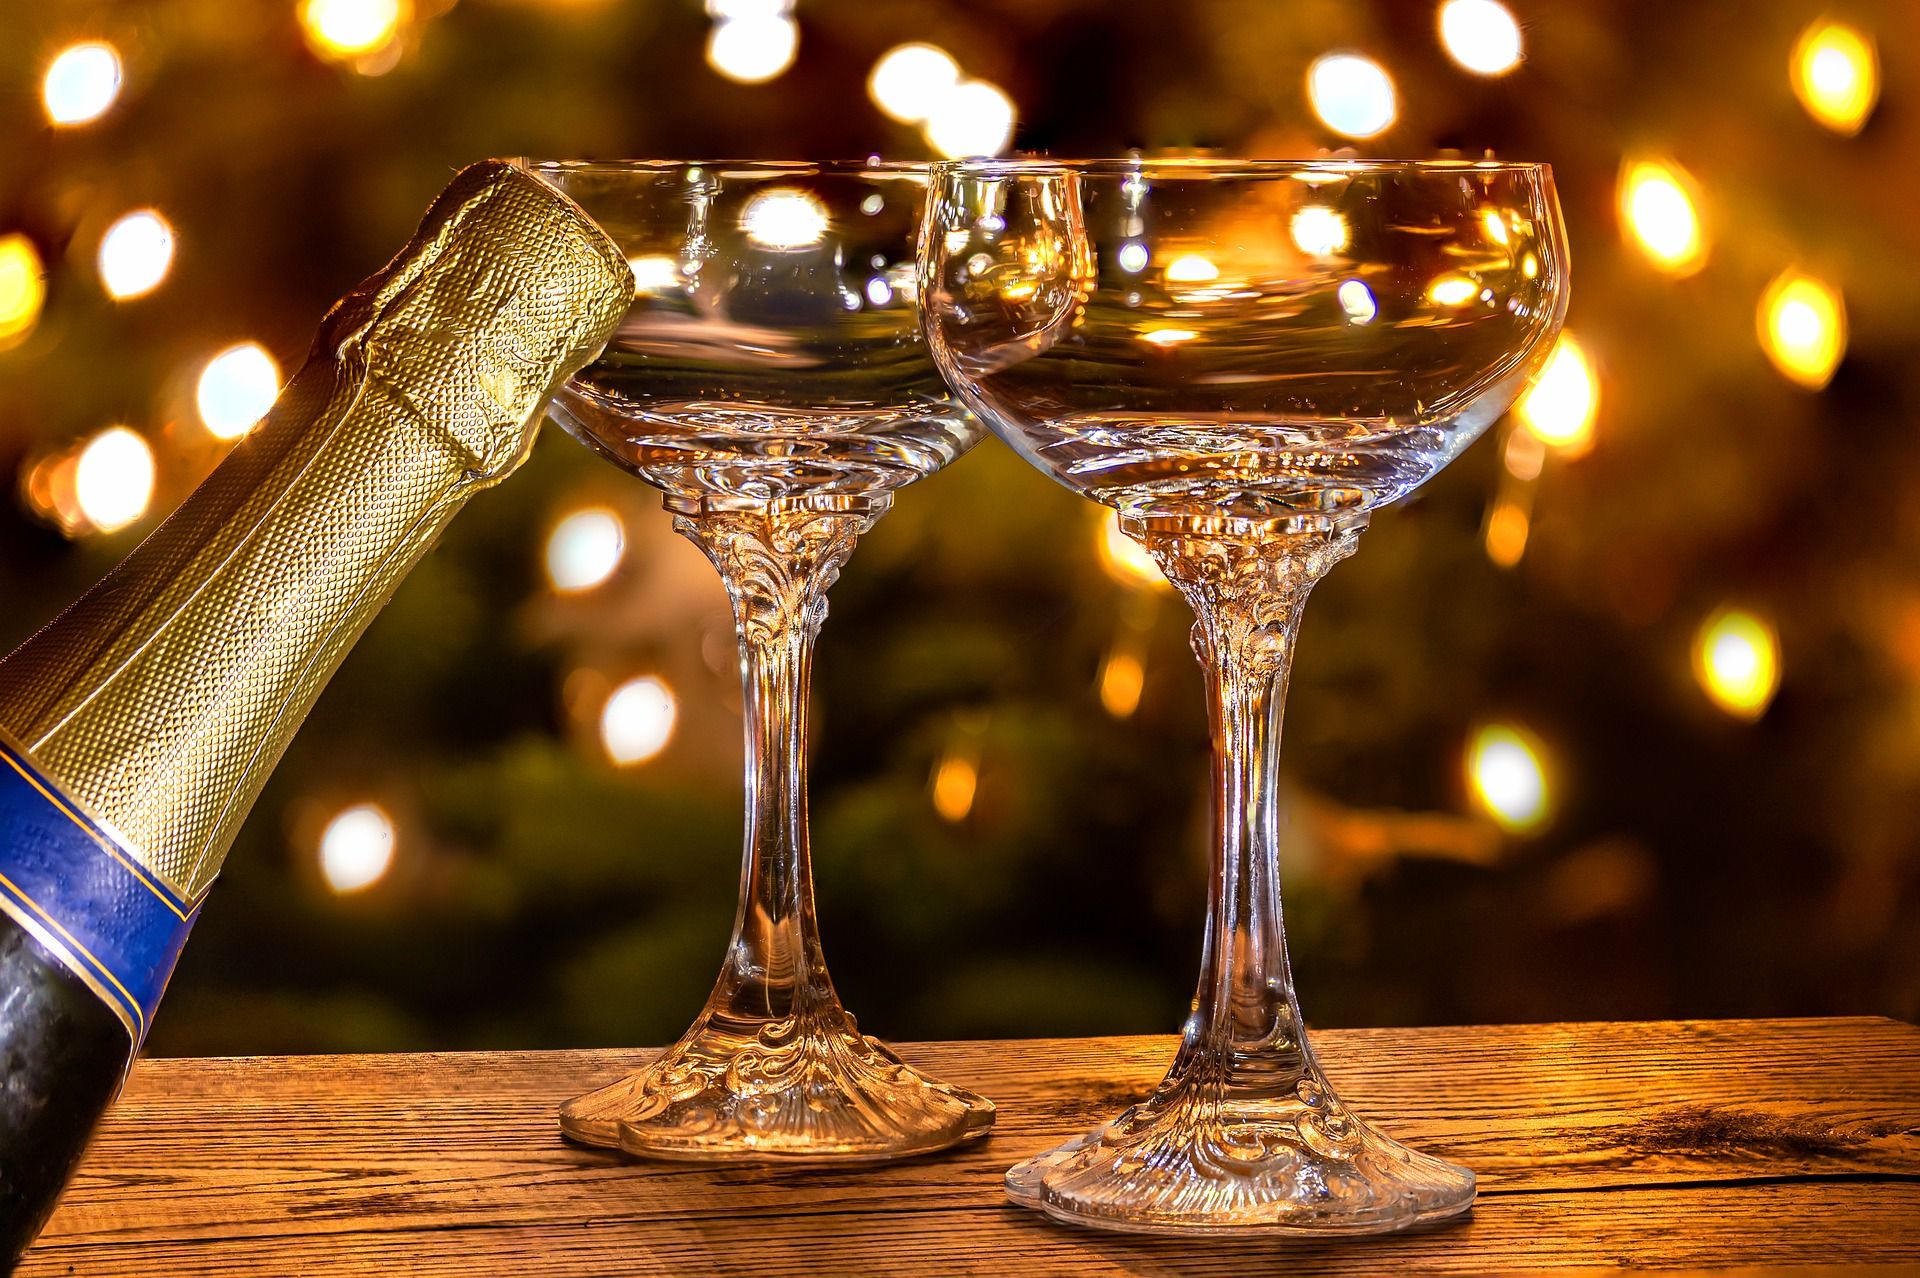 champagne-glasses-4731532_1920